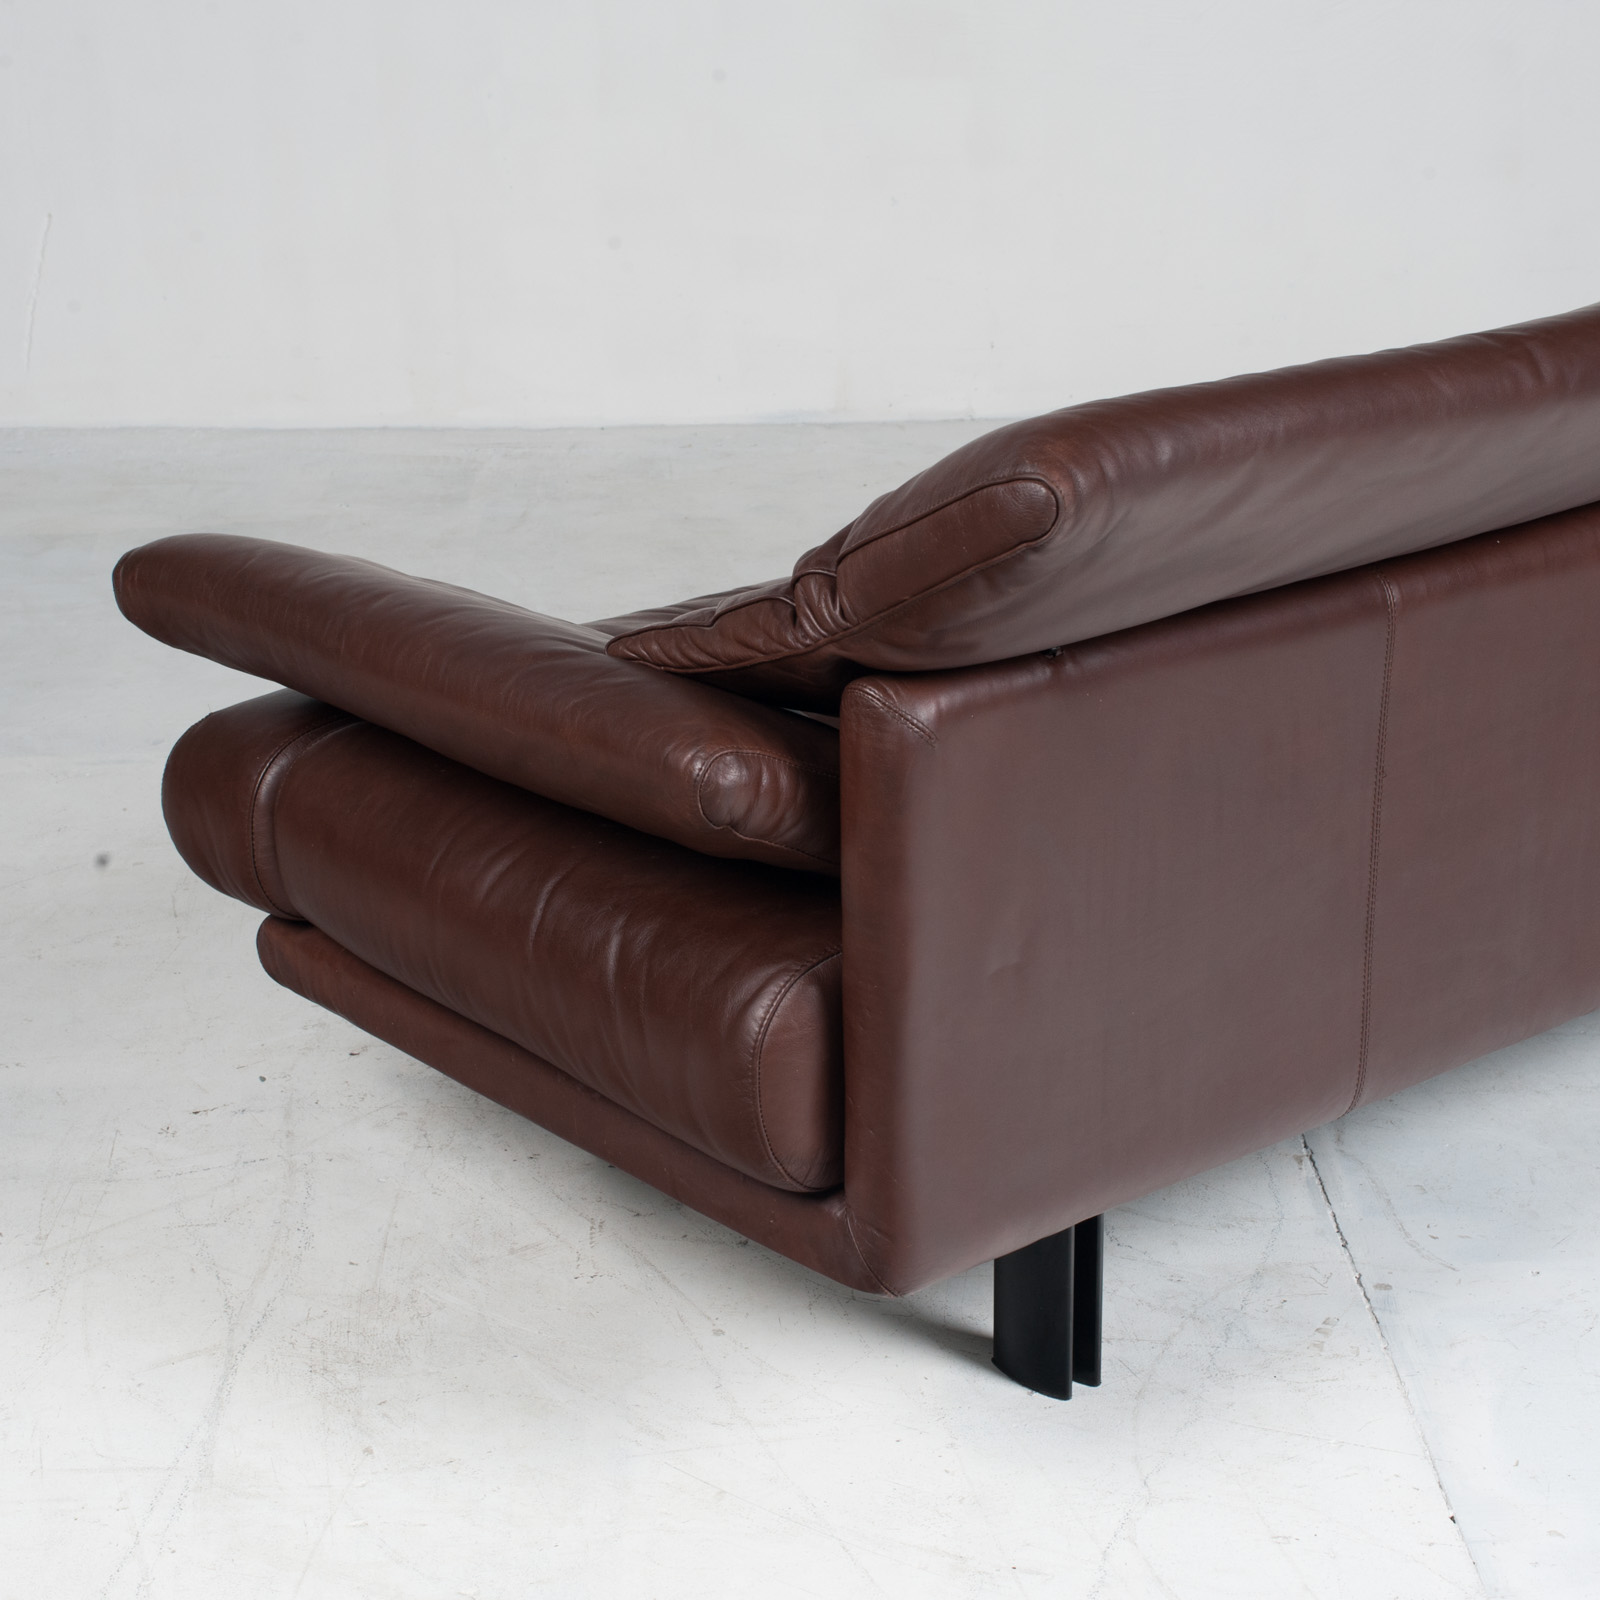 Alanda Sofa By Paolo Piva For B&b Italia In Burgundy Leather 1980s Italy 17